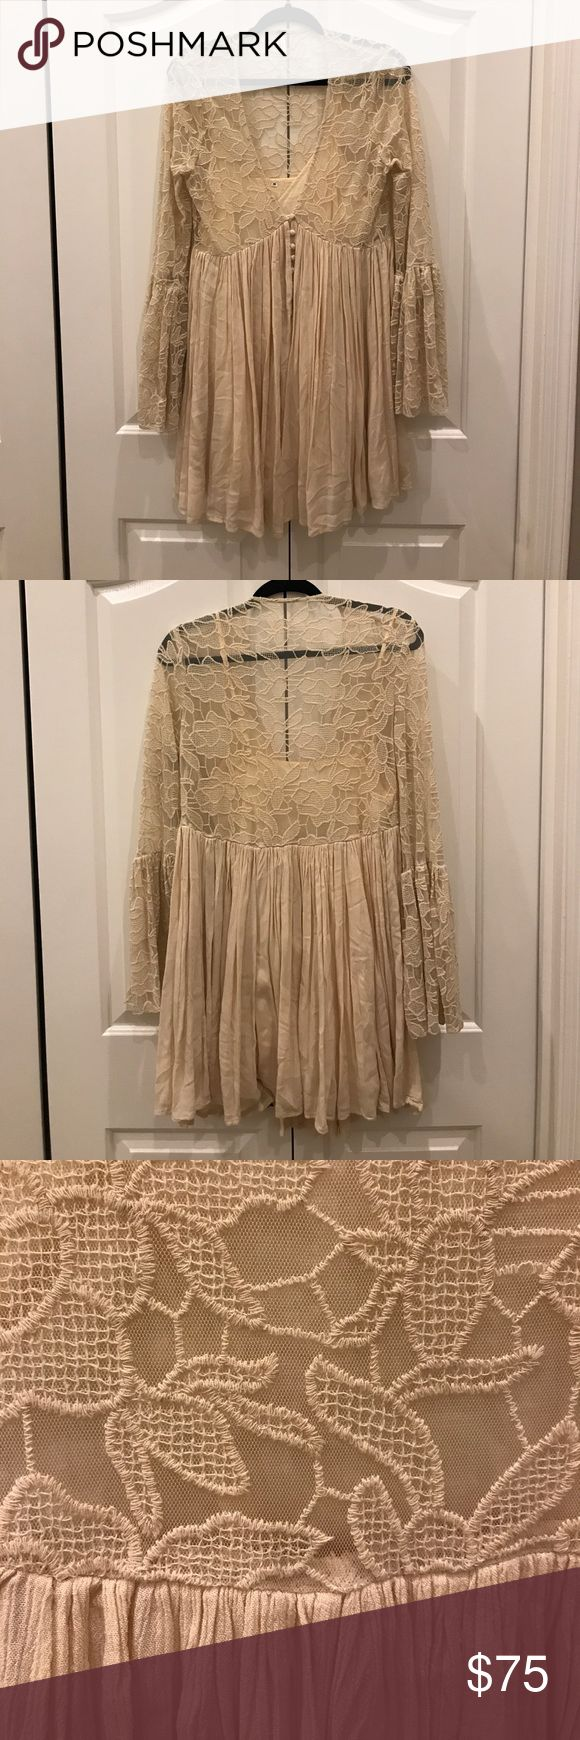 Free people lace dress with slip Flowy cream fall dress! Rarely worn. So cute and a classic fp item. Free People Dresses Mini